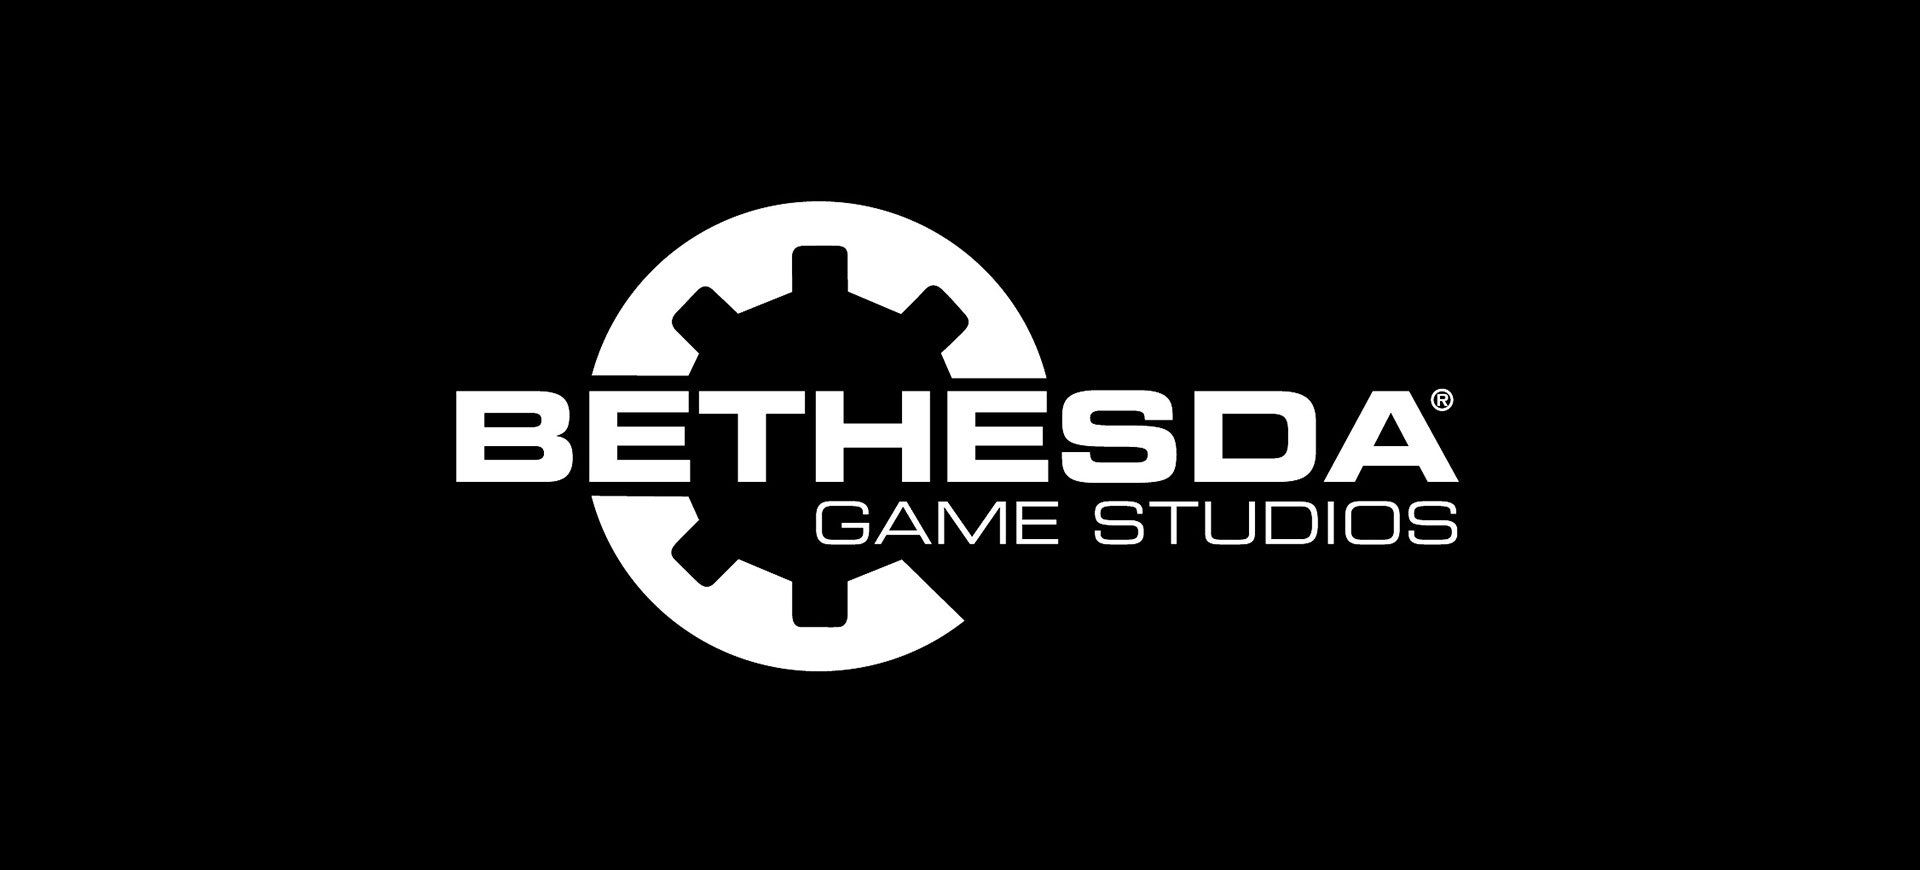 EU Clears Microsoft's .5 Billion Acquisition of Bethesda's Parent Company ZeniMax